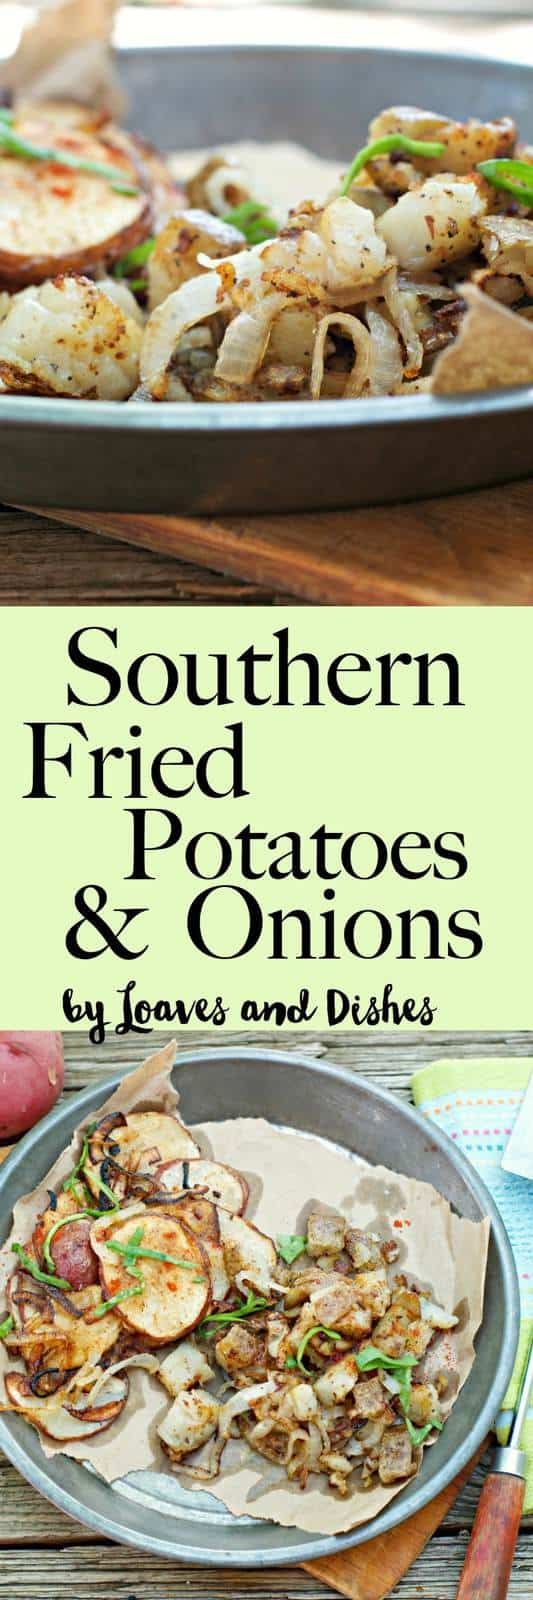 Southern Fried Potatoes and Onions - Loaves and Dishes